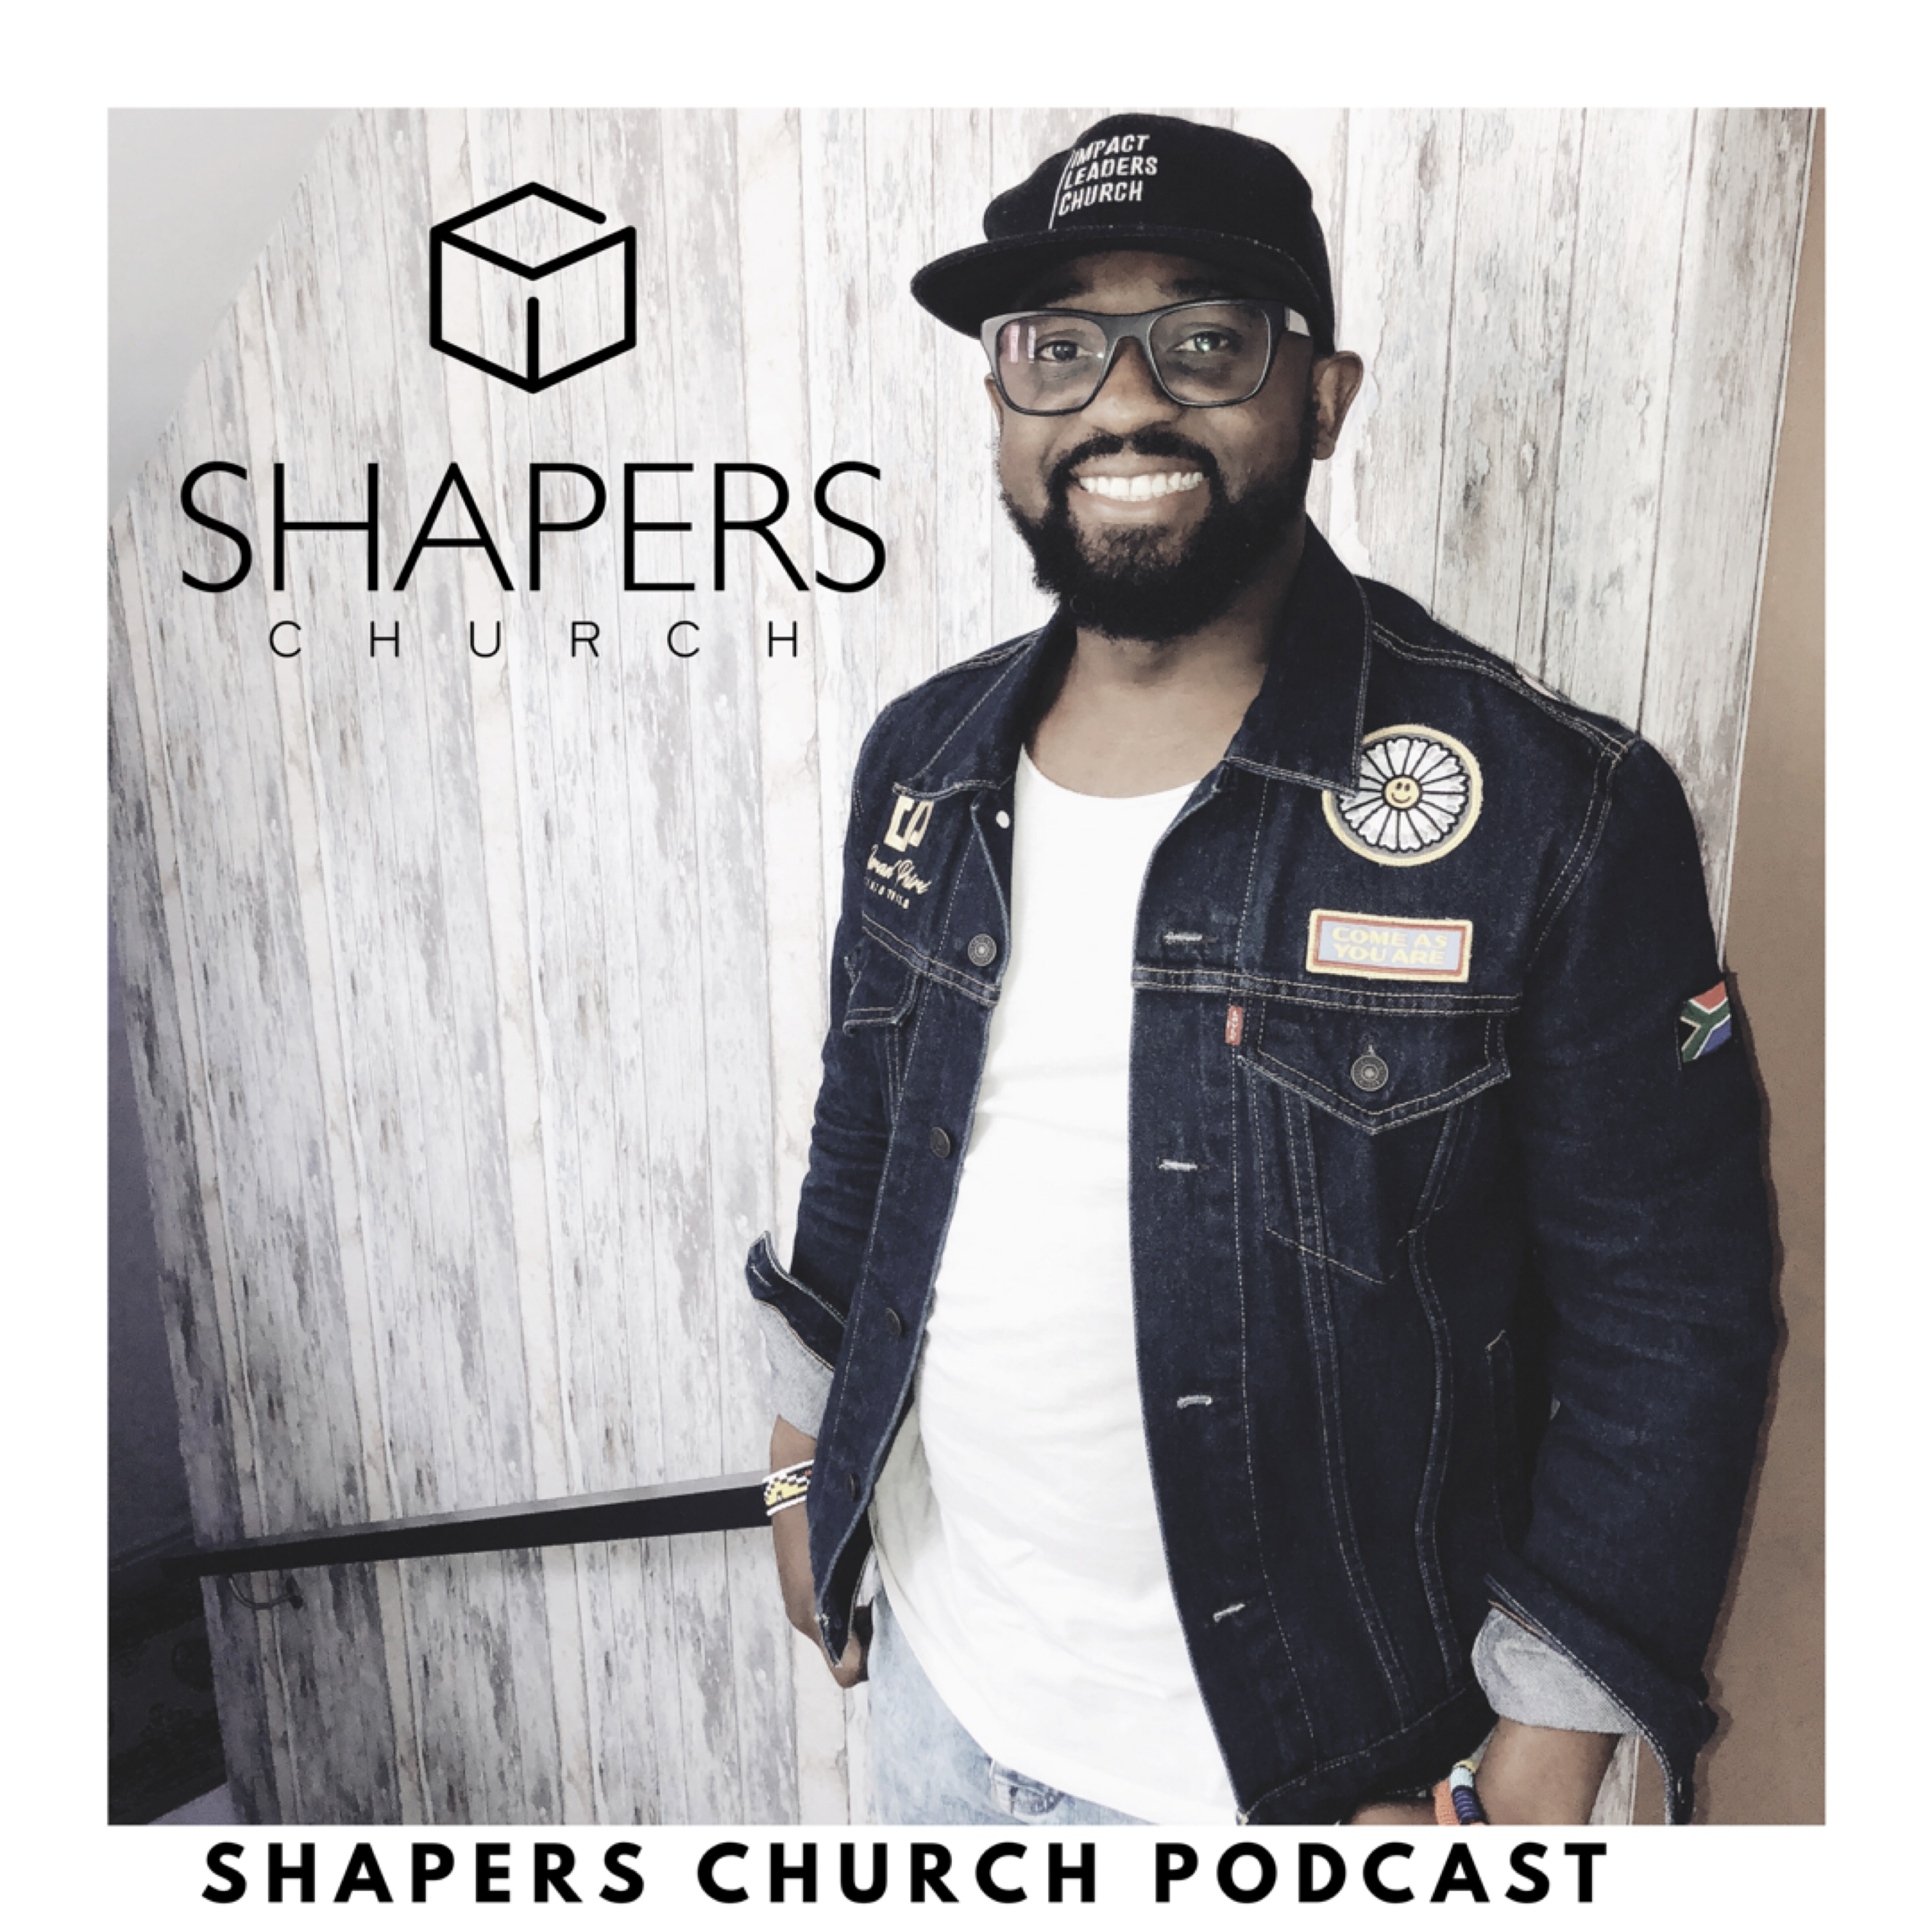 Shapers Church Podcast